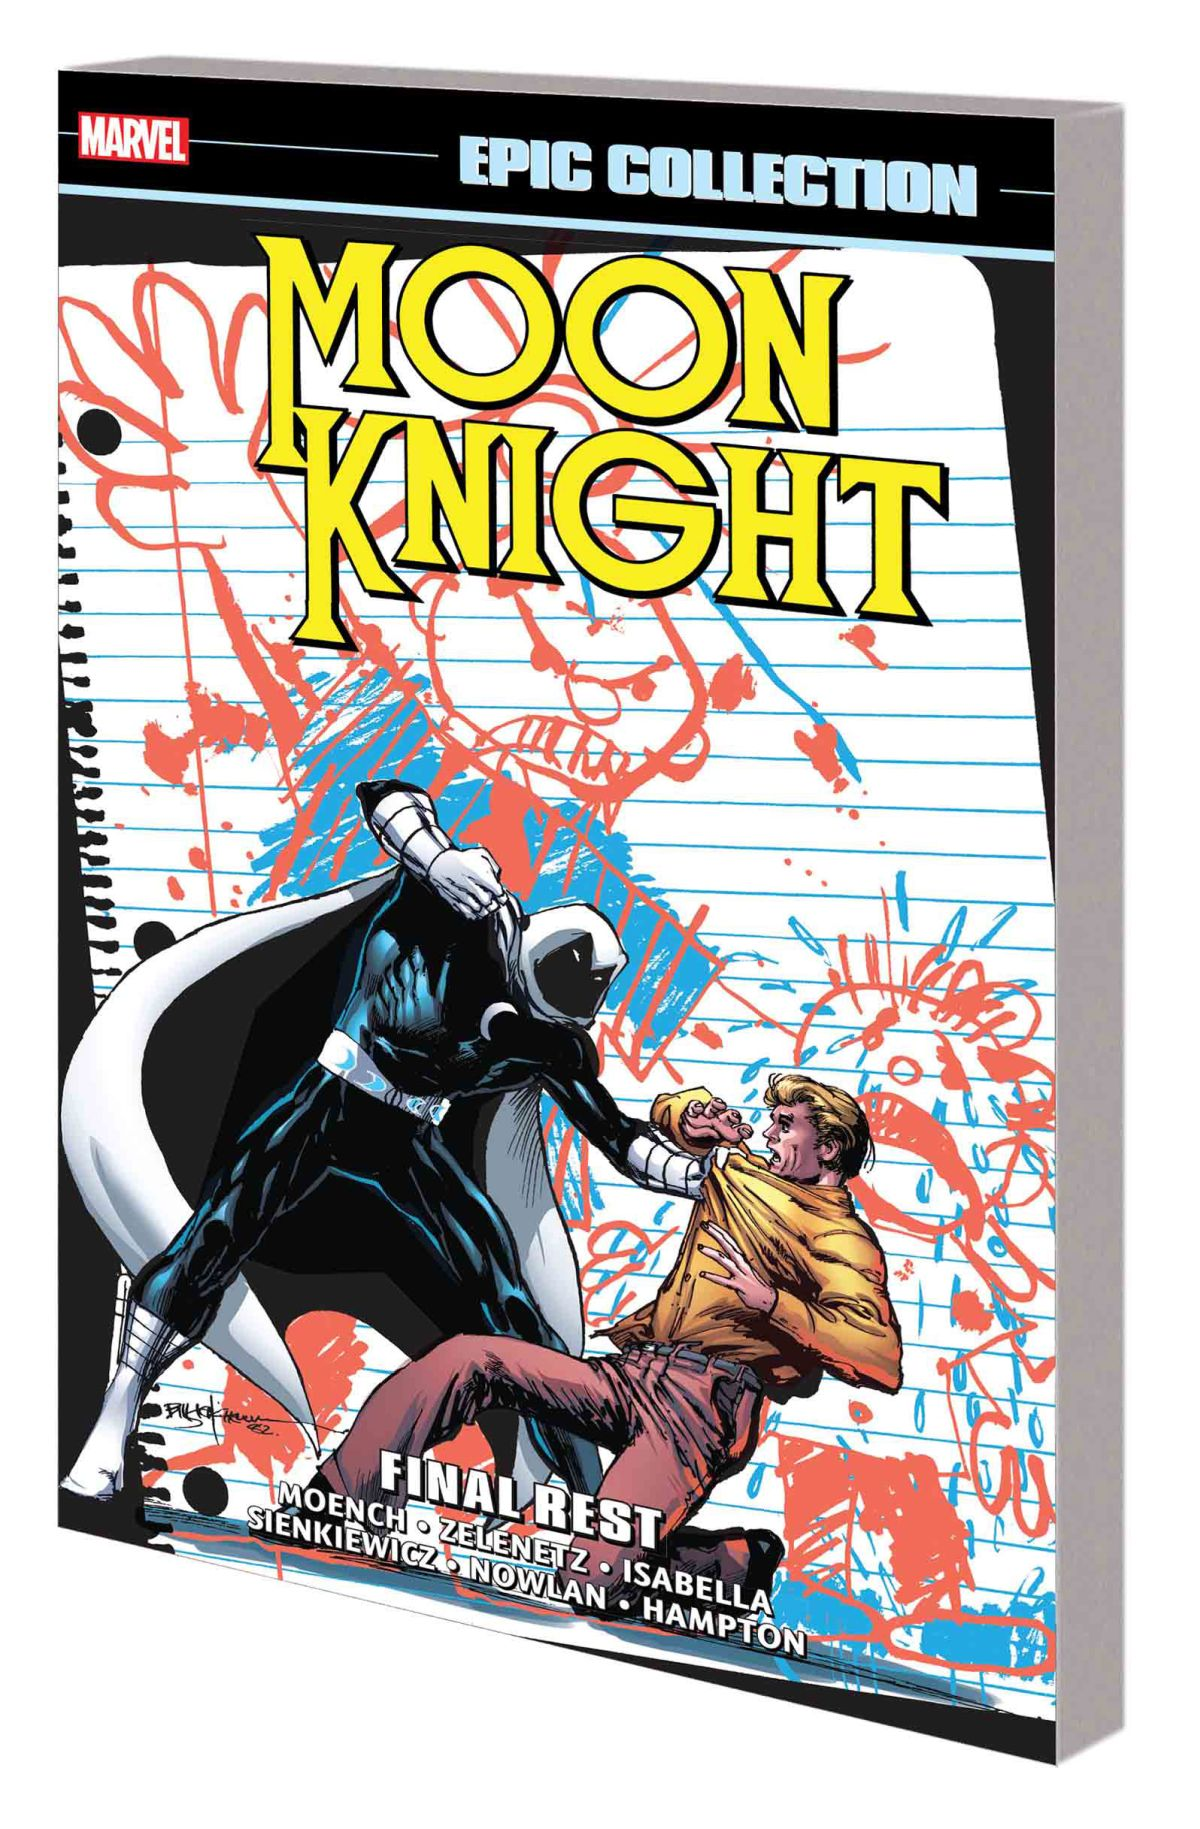 MOON KNIGHT EPIC COLLECTION: FINAL REST TPB